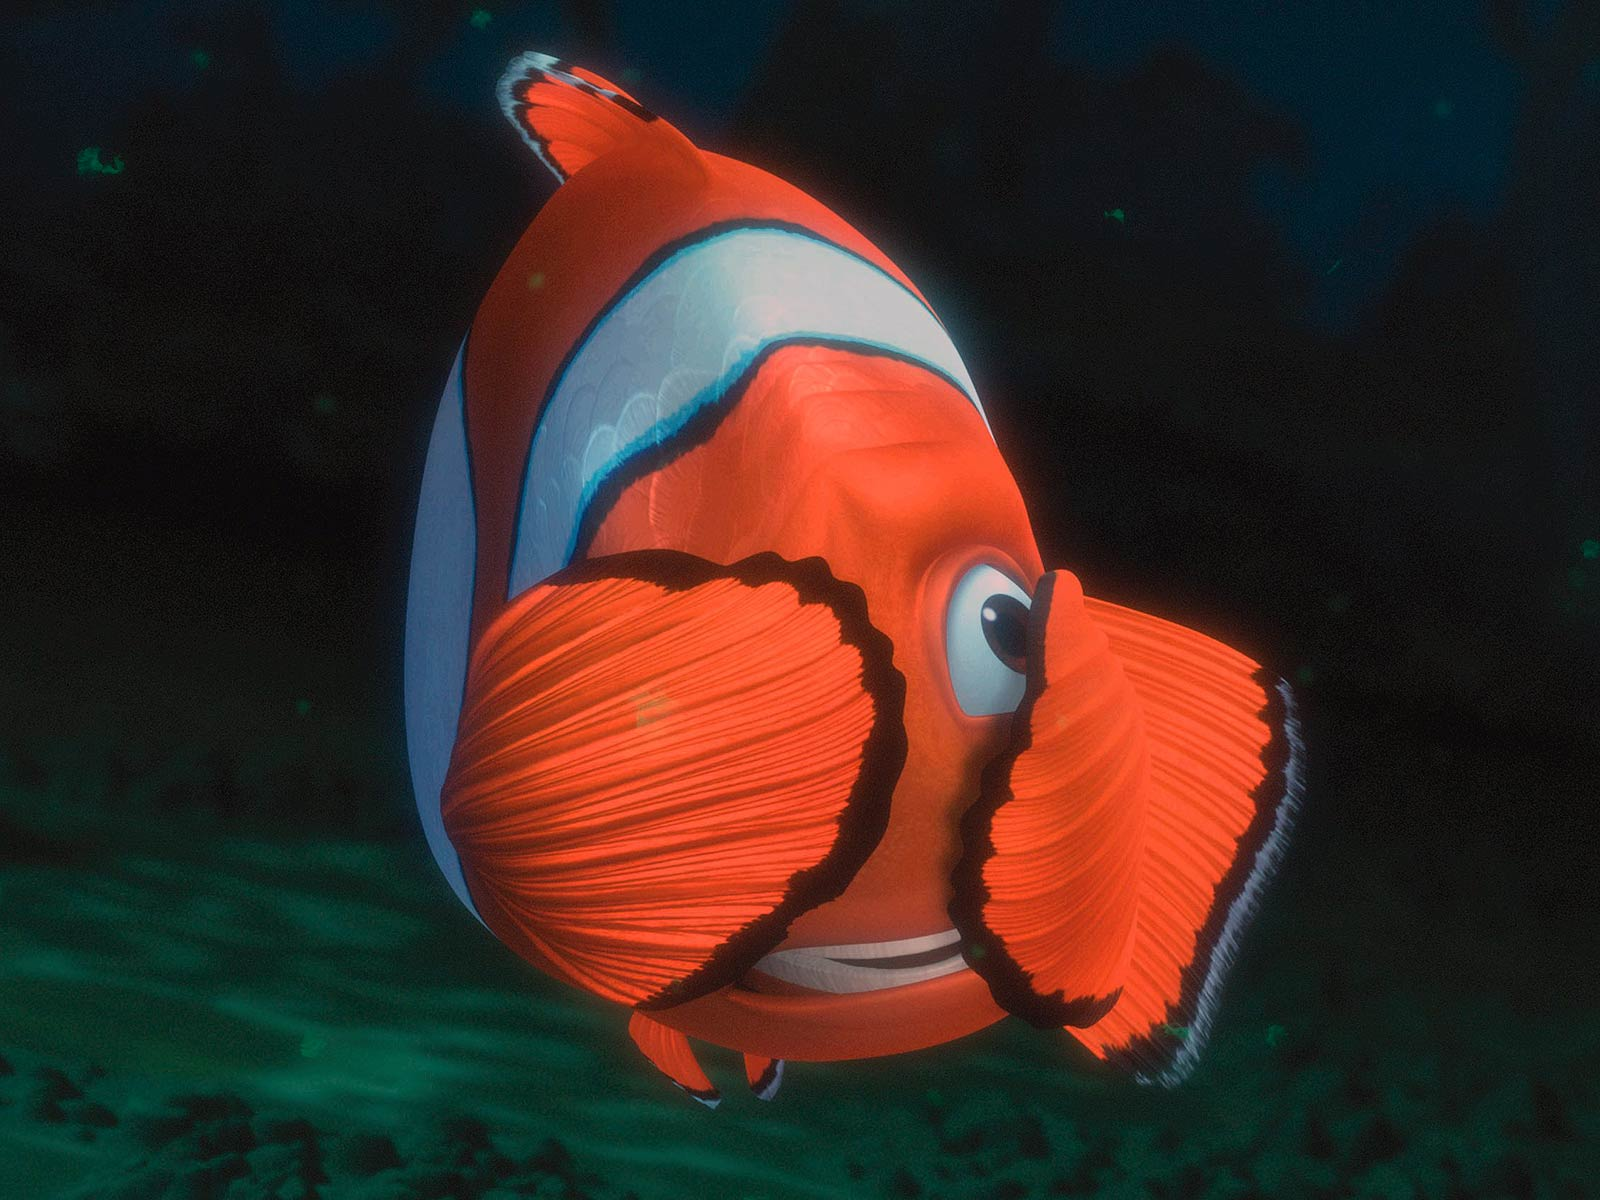 Iphone 5 Clown Fish Wallpaper Finding Nemo Wallpaper And Background Image 1600x1200